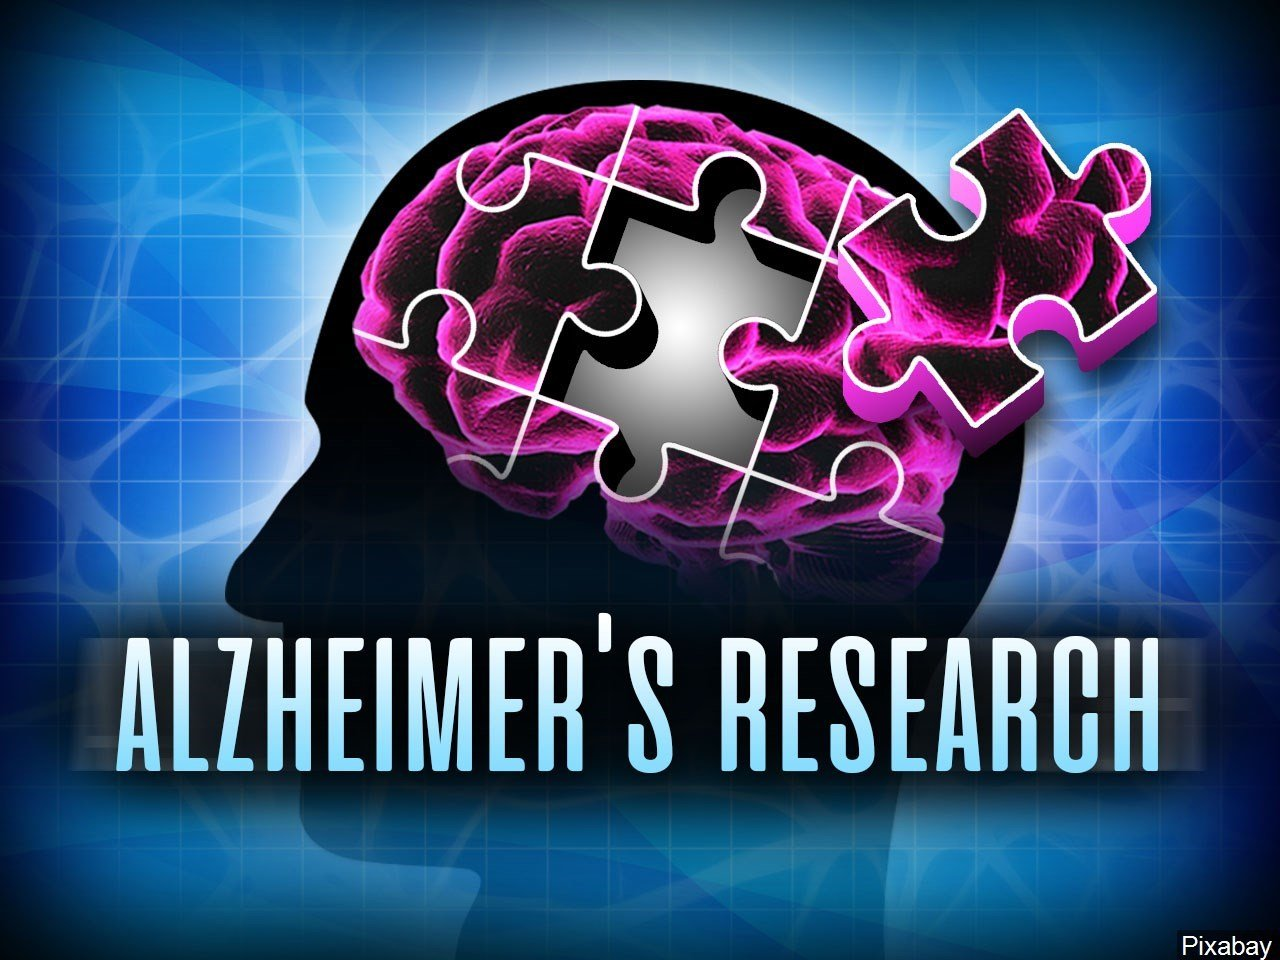 Researchers Find New Evidence That Viruses May Play a Role in Alzheimer's